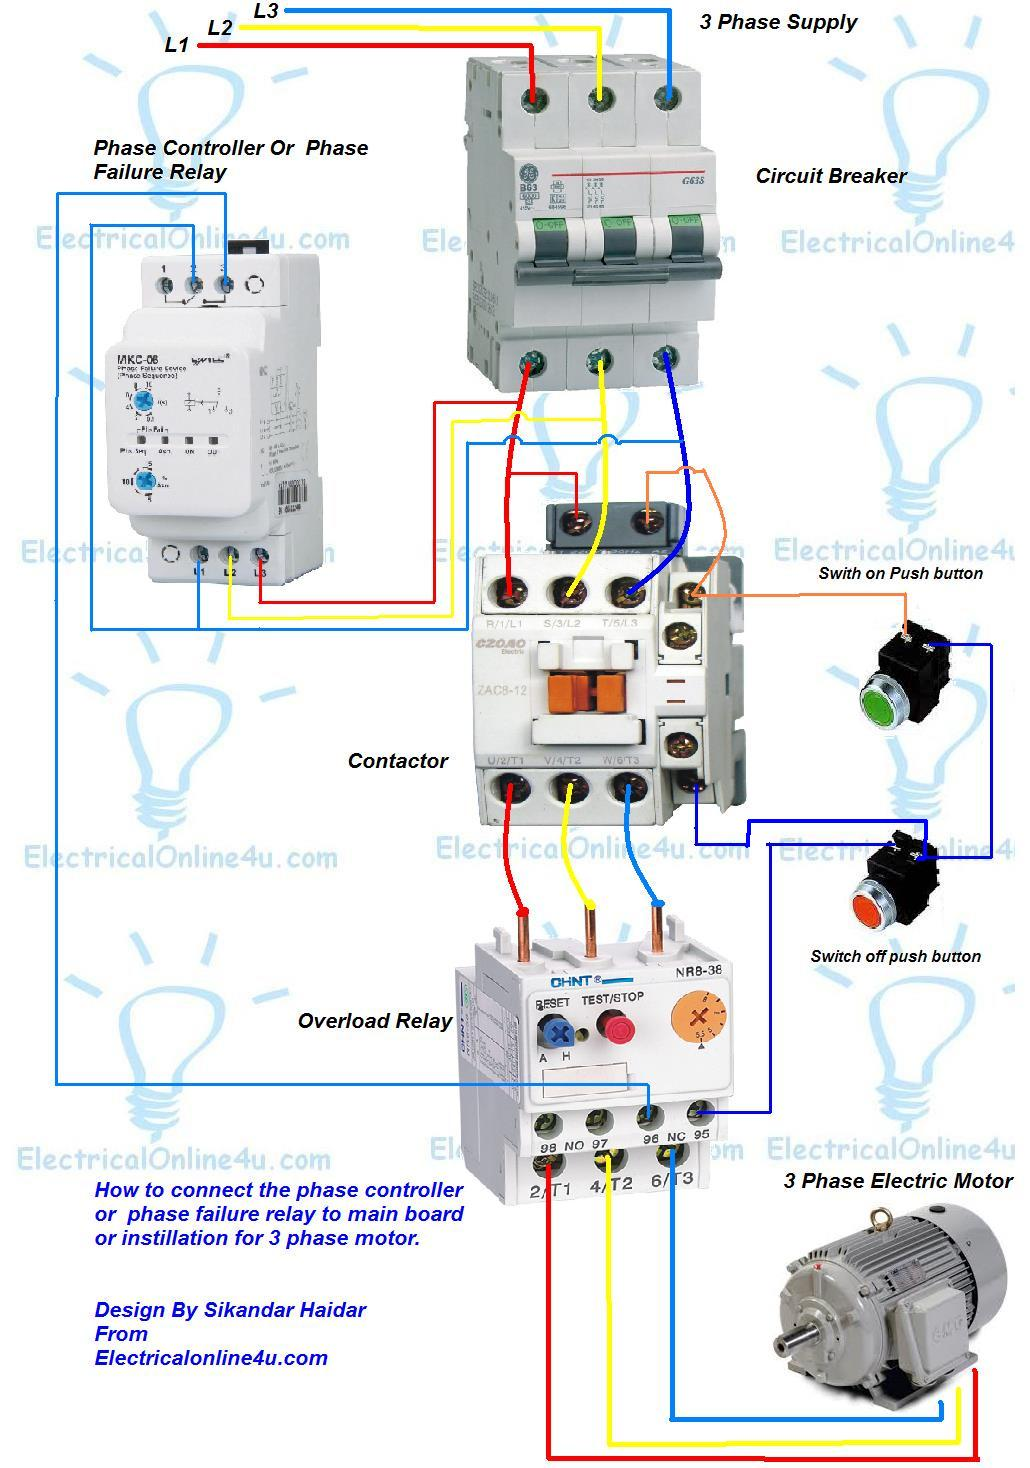 diagram] 3 phase controller wiring diagram full version hd quality wiring  diagram - mindschematic.rapfrance.fr  mindschematic.rapfrance.fr